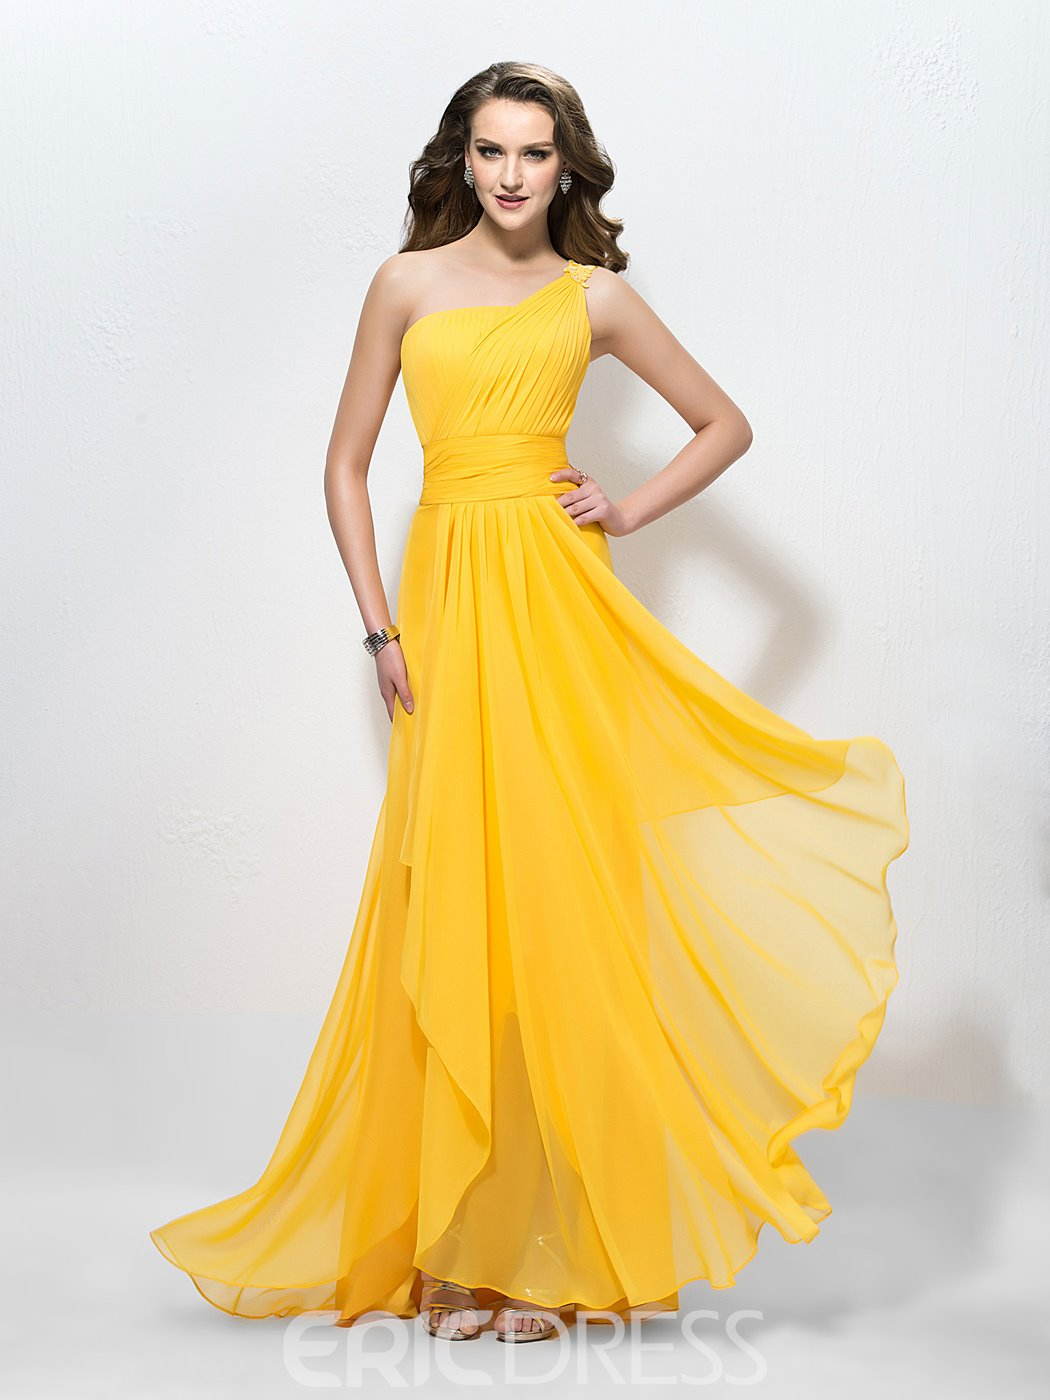 Ericdress One Shoulder A-Line Applique Long Prom Dress